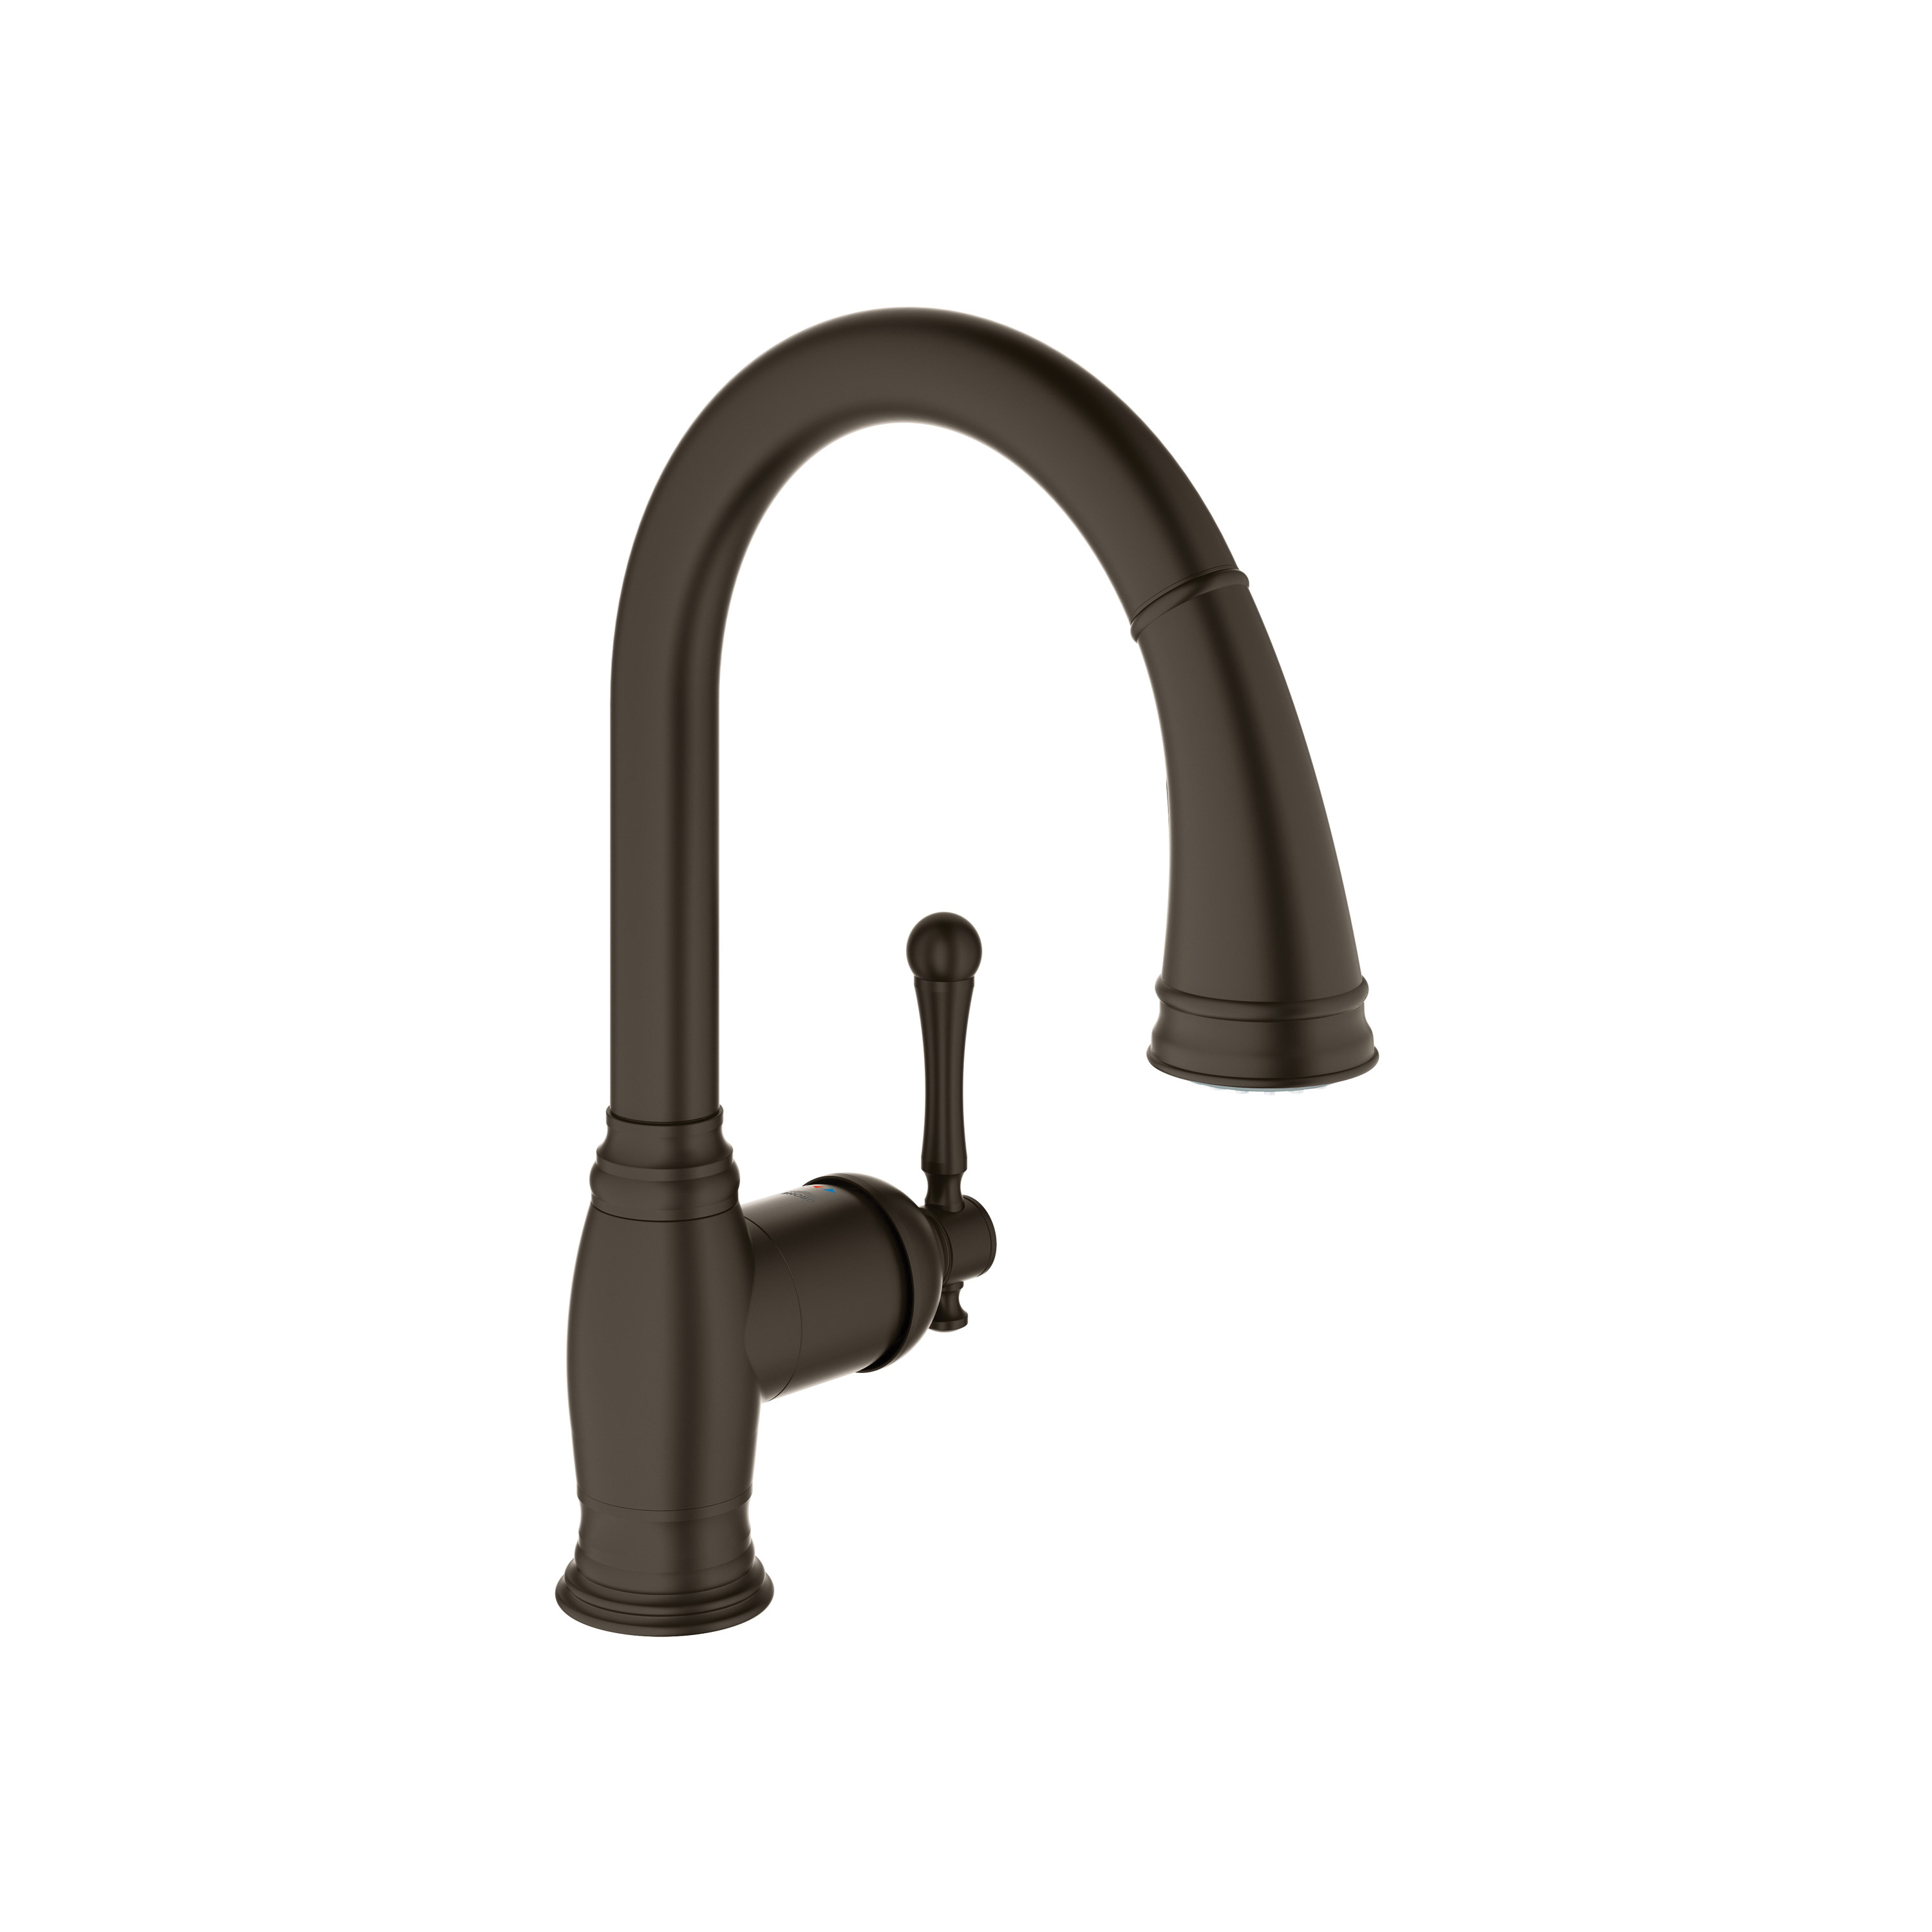 GROHE 33870ZB2 Bridgeford Kitchen Faucet With Dual Spray, 1.75 gpm, 1 Faucet Hole, Oil Rubbed Bronze, 1 Handle, Import, Residential